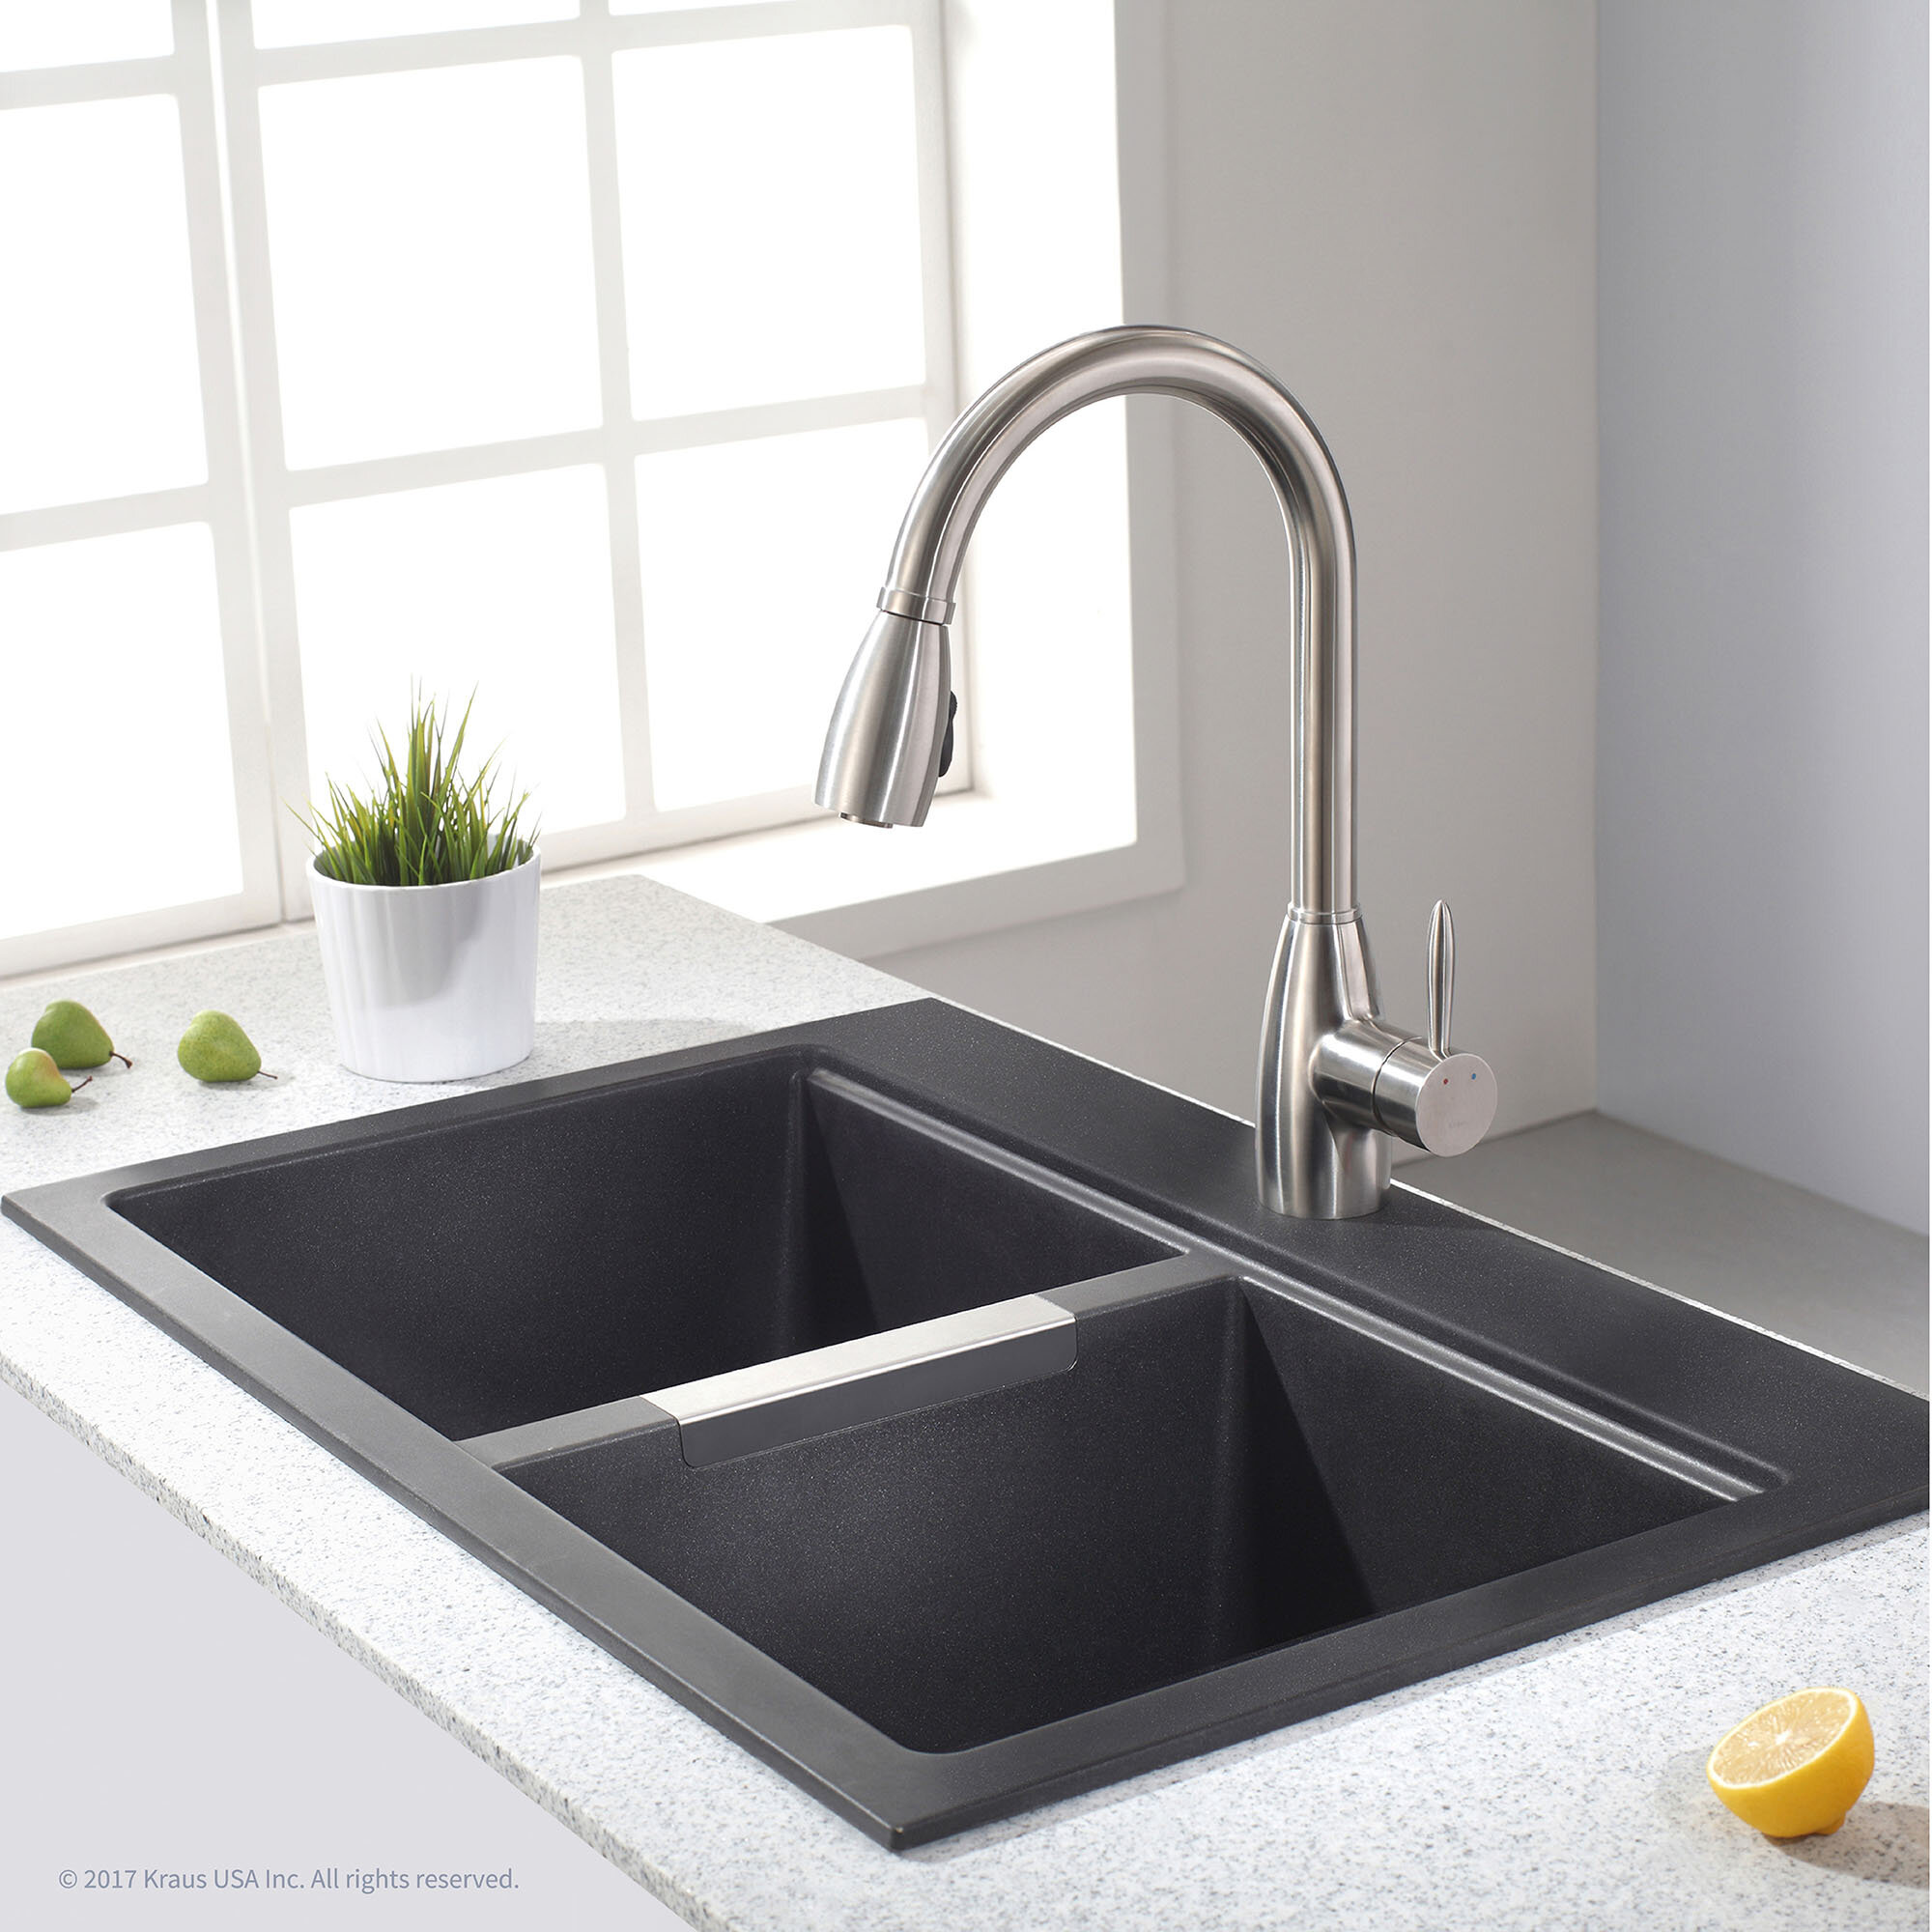 Kgd 433b Kraus Granite 33 L X 22 W Double Basin Dual Mount Kitchen Sink Reviews Wayfair